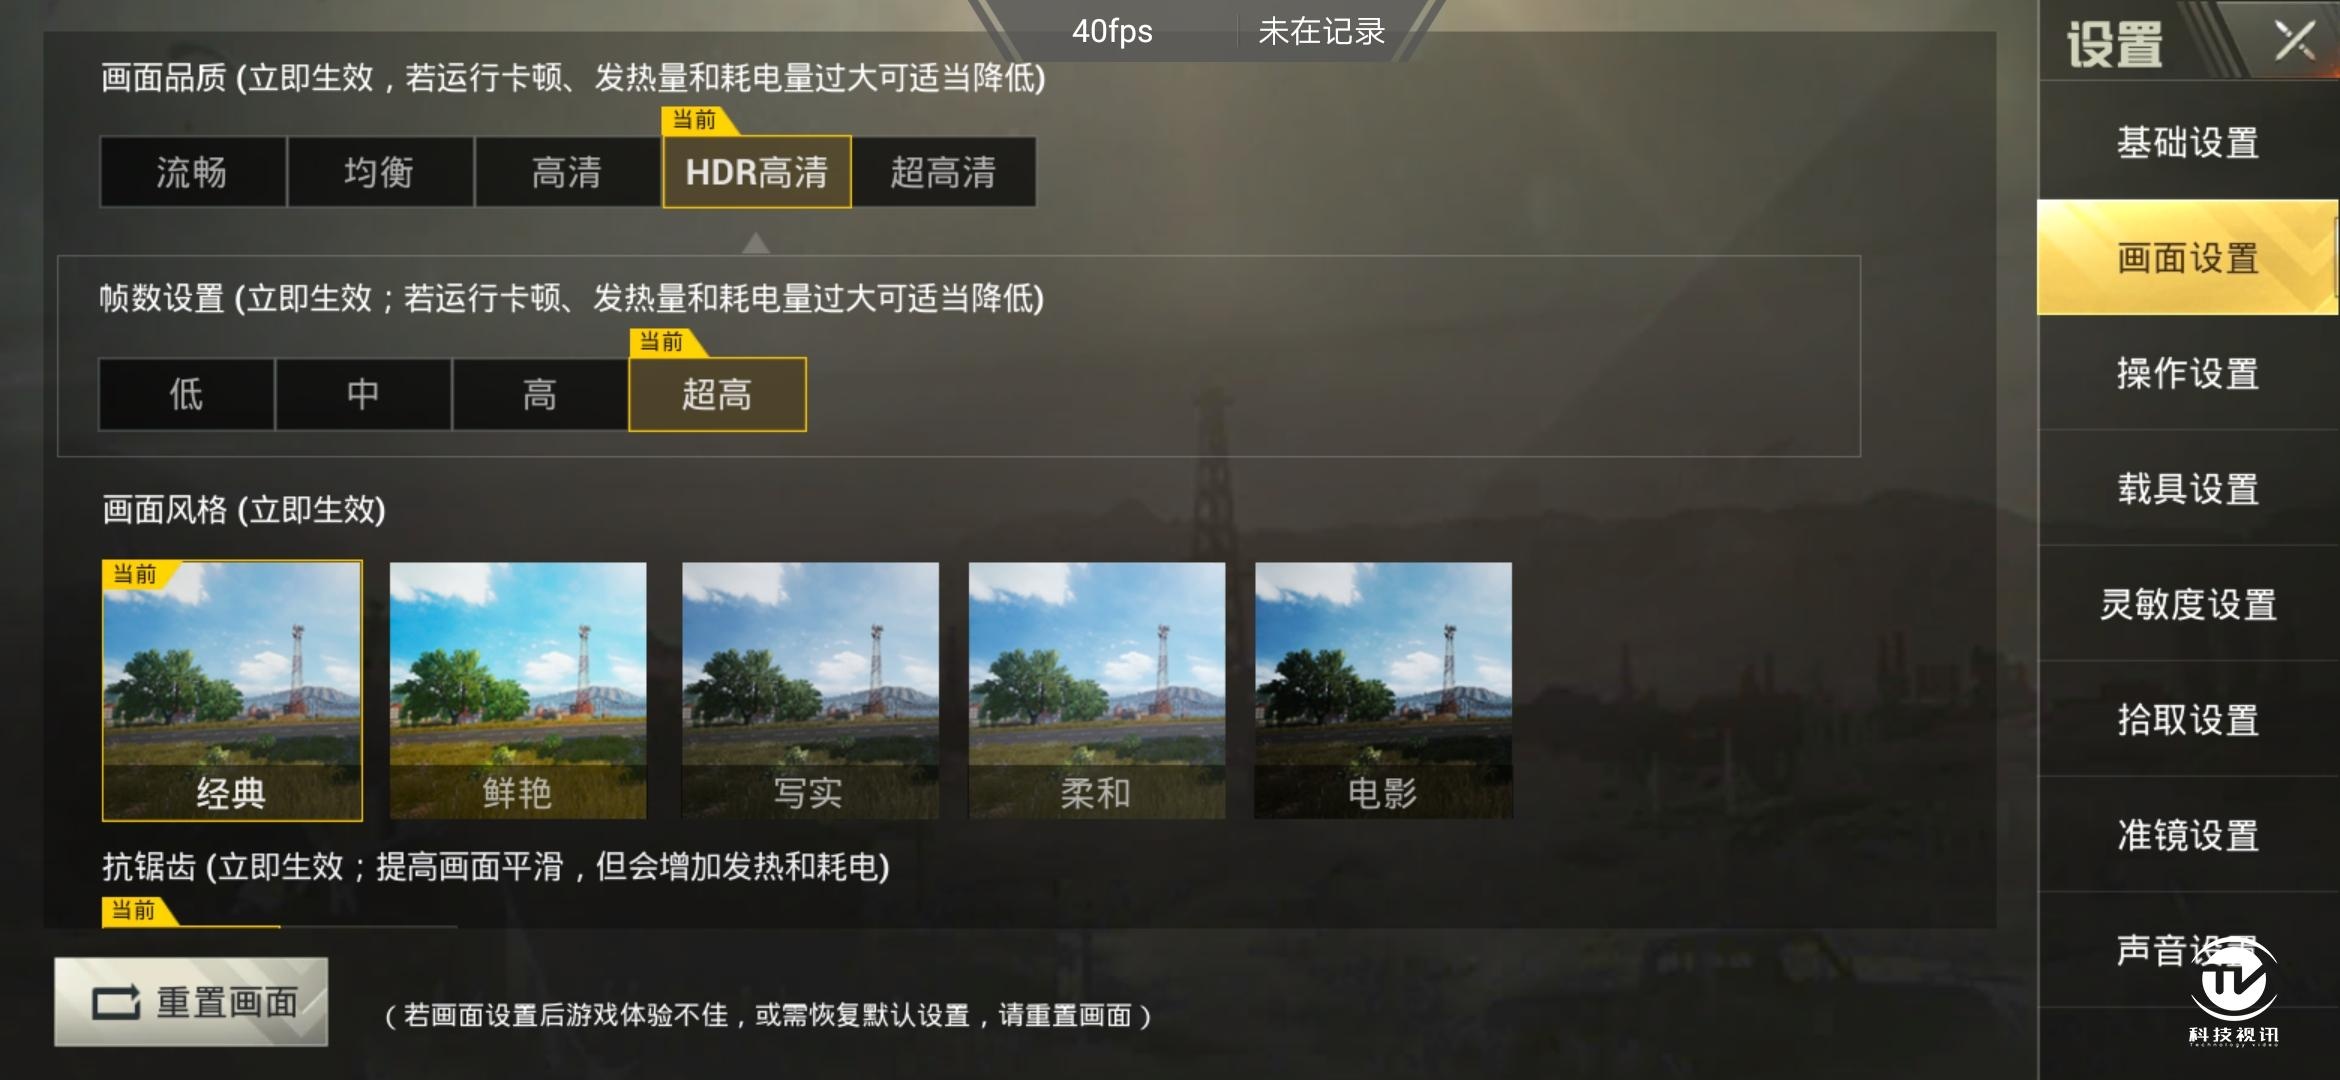 Screenshot_20190506_133343_com.tencent.tmgp.pubgmhd.jpg